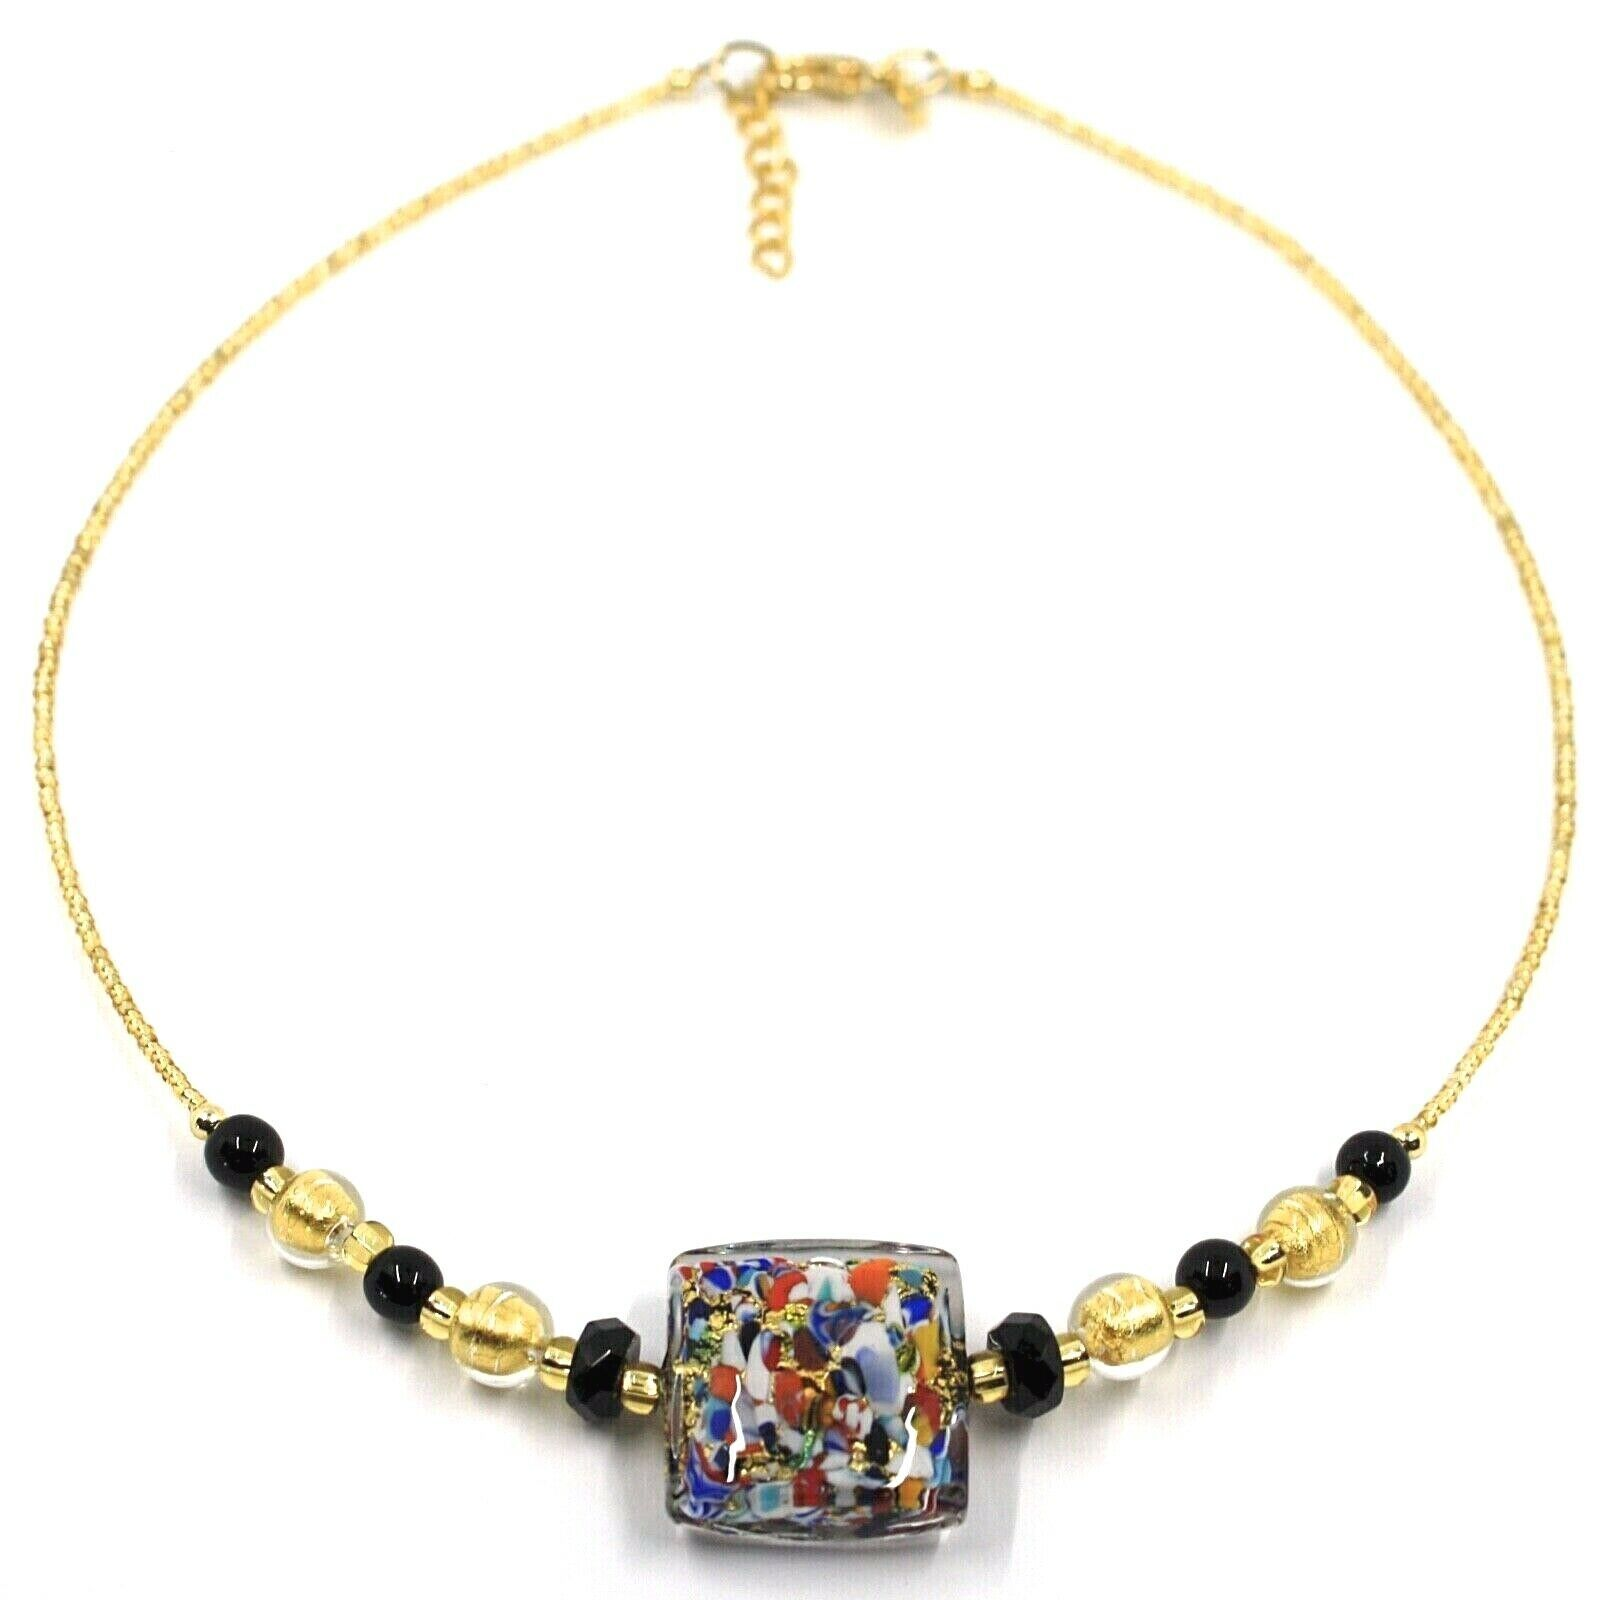 NECKLACE MACULATE MULTI COLOR MURANO GLASS BIG SQUARE, GOLD LEAF, ITALY MADE